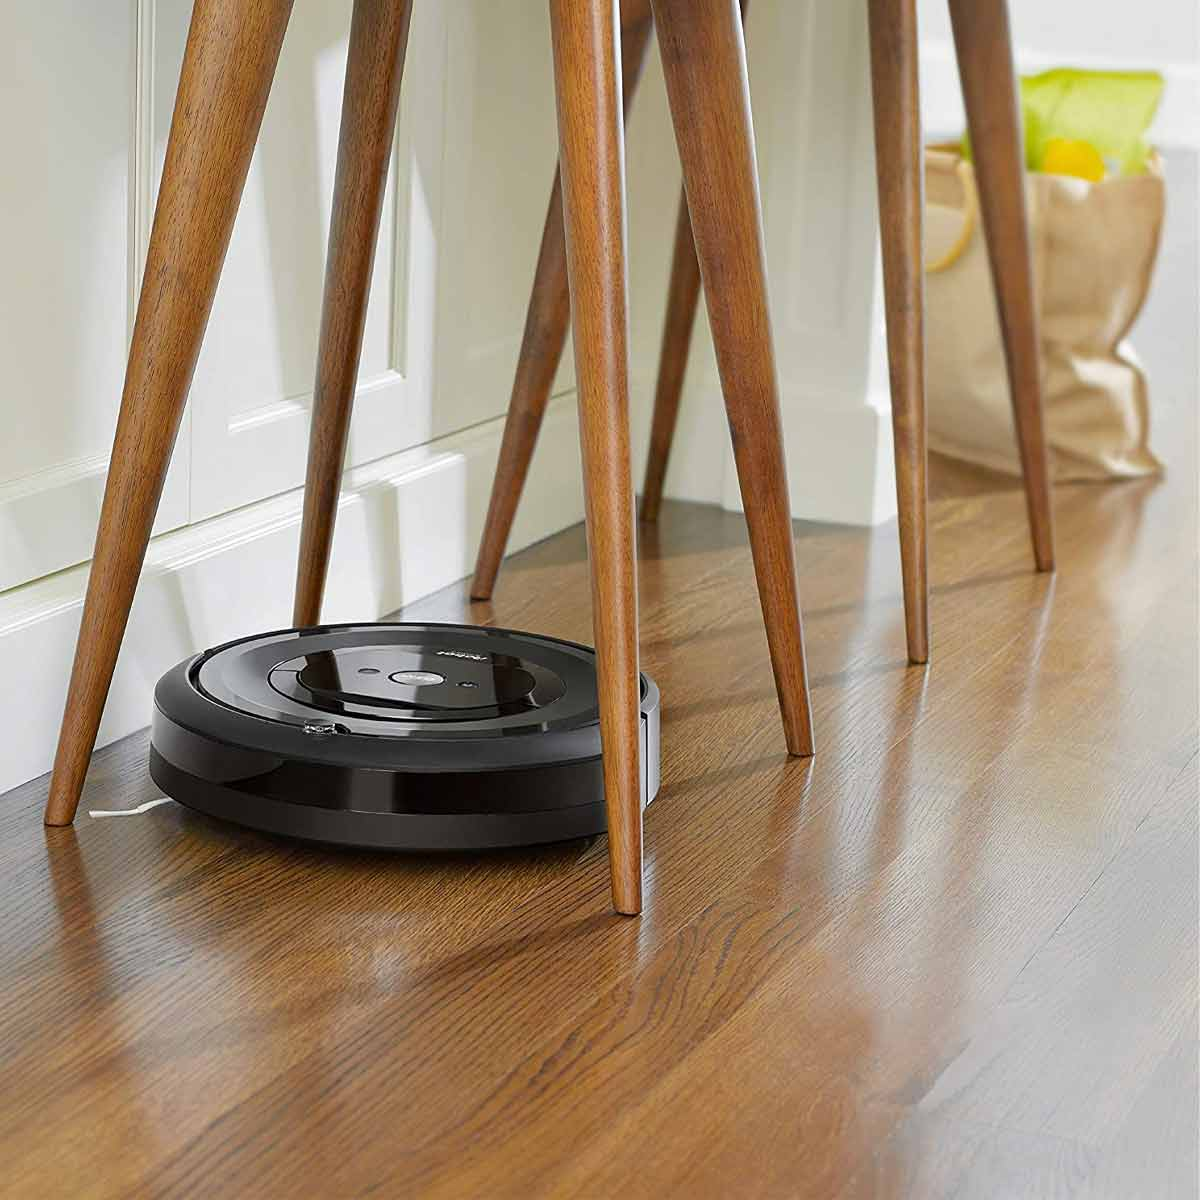 Roomba Robot Vacuum under chair